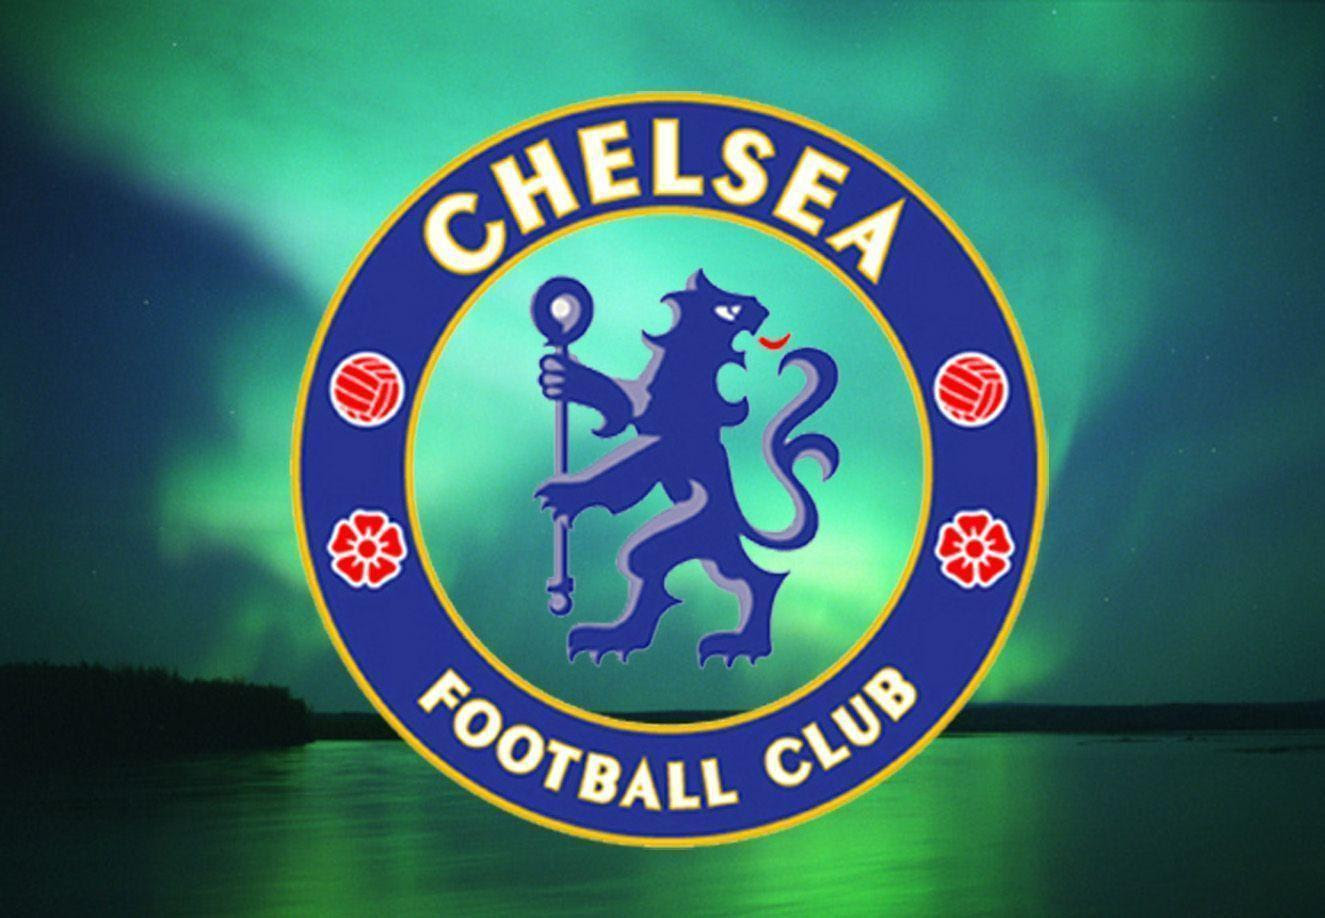 Lambang Chelsea Wallpapers 2016 Wallpaper Cave